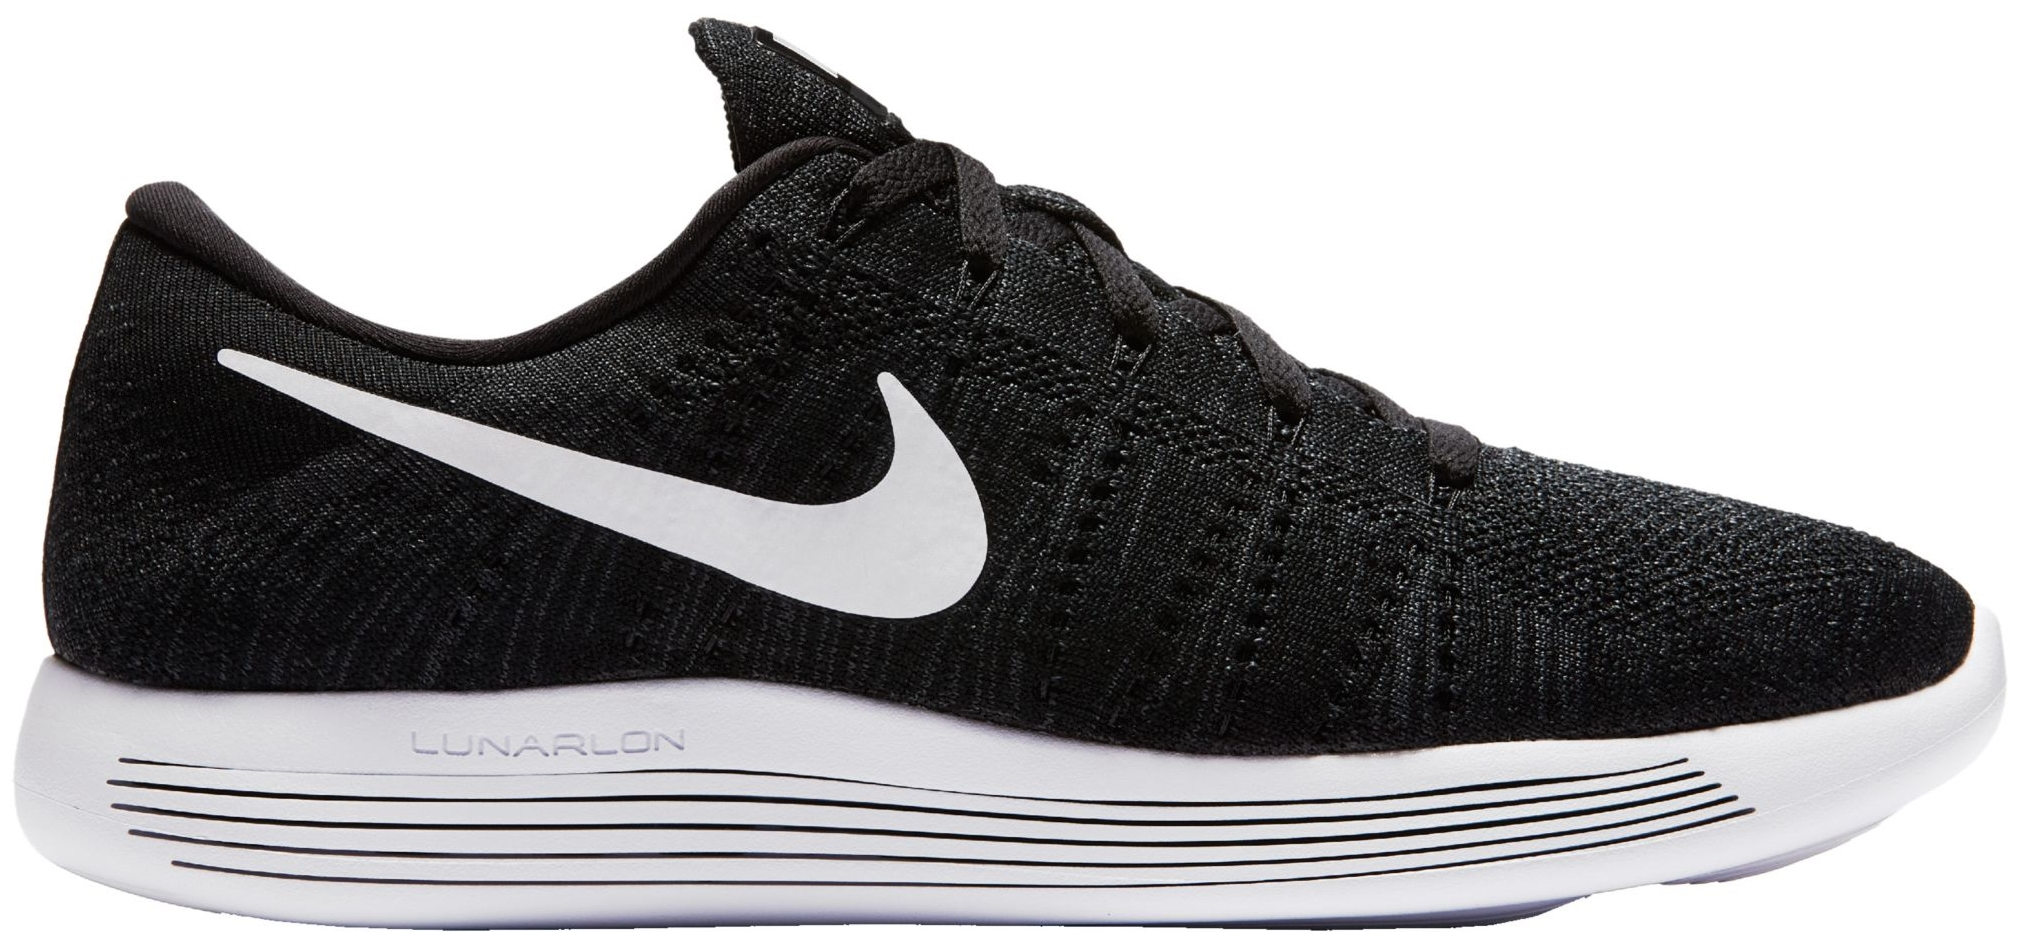 brand new 188ea eb340 ... australia nike mens lunarepic low flyknit running shoes black 12.0  walmart d9444 d487a